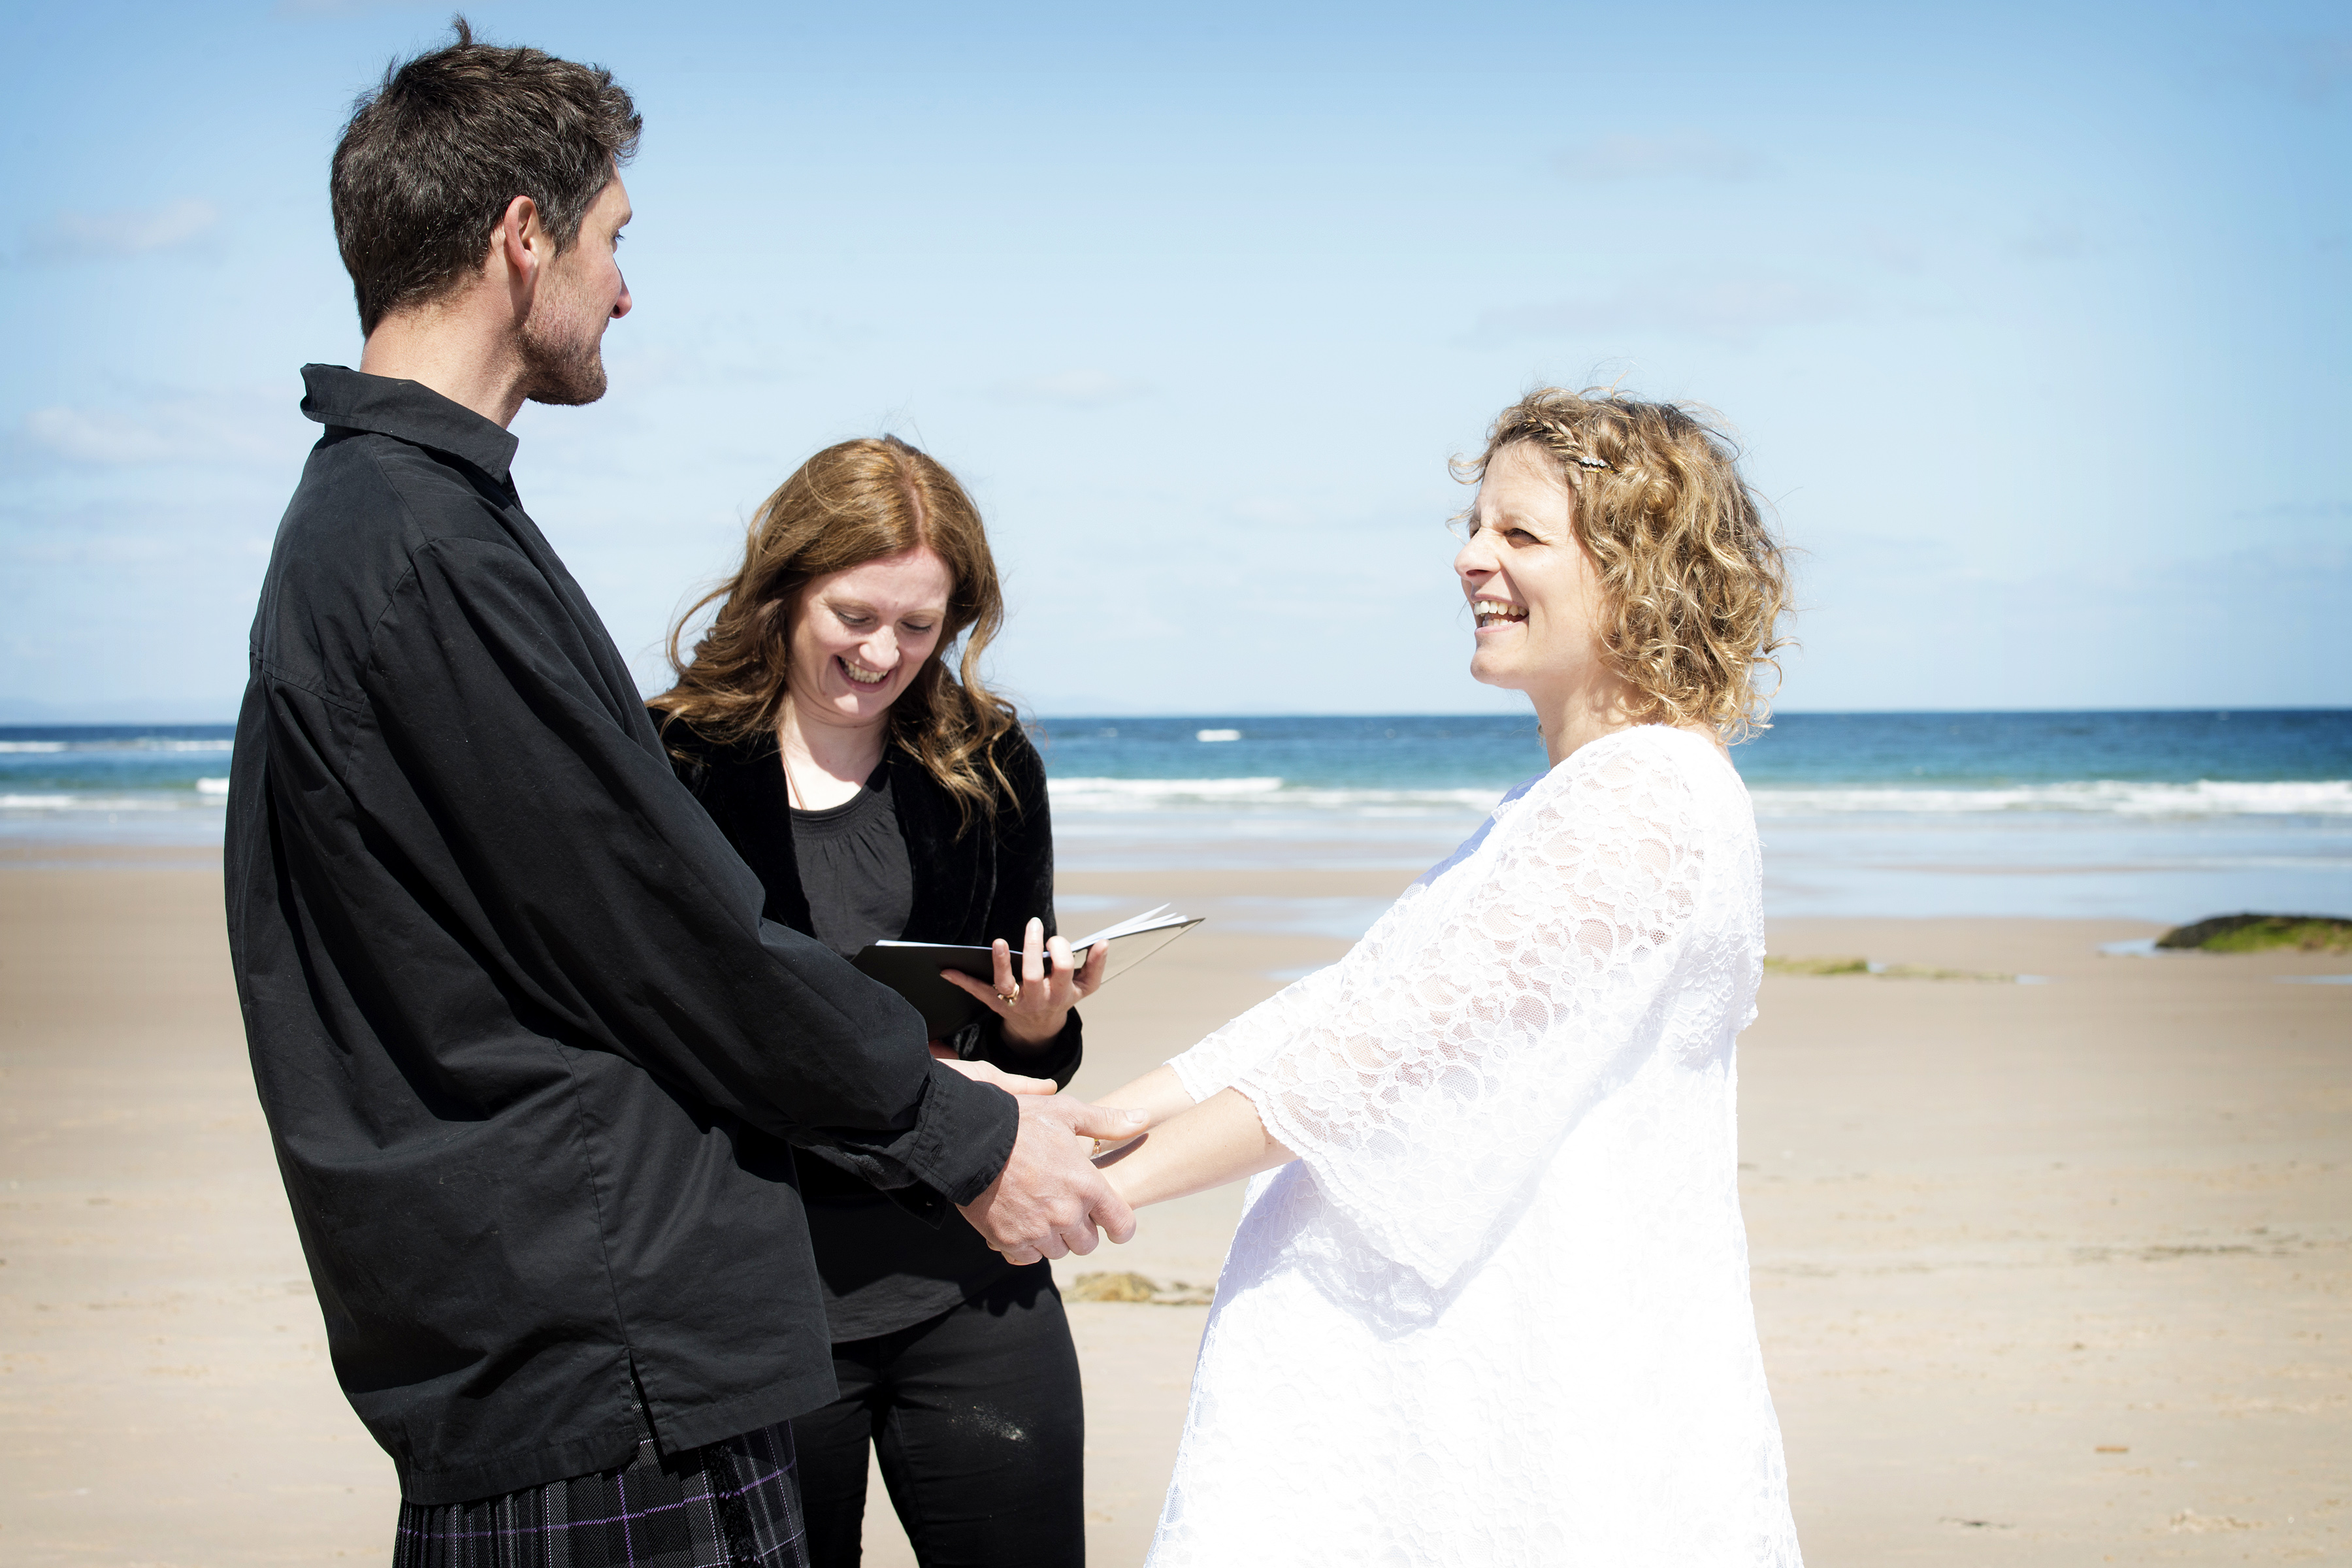 handcrafted ceremonies wedding celebrant humanist wedding elgin moray